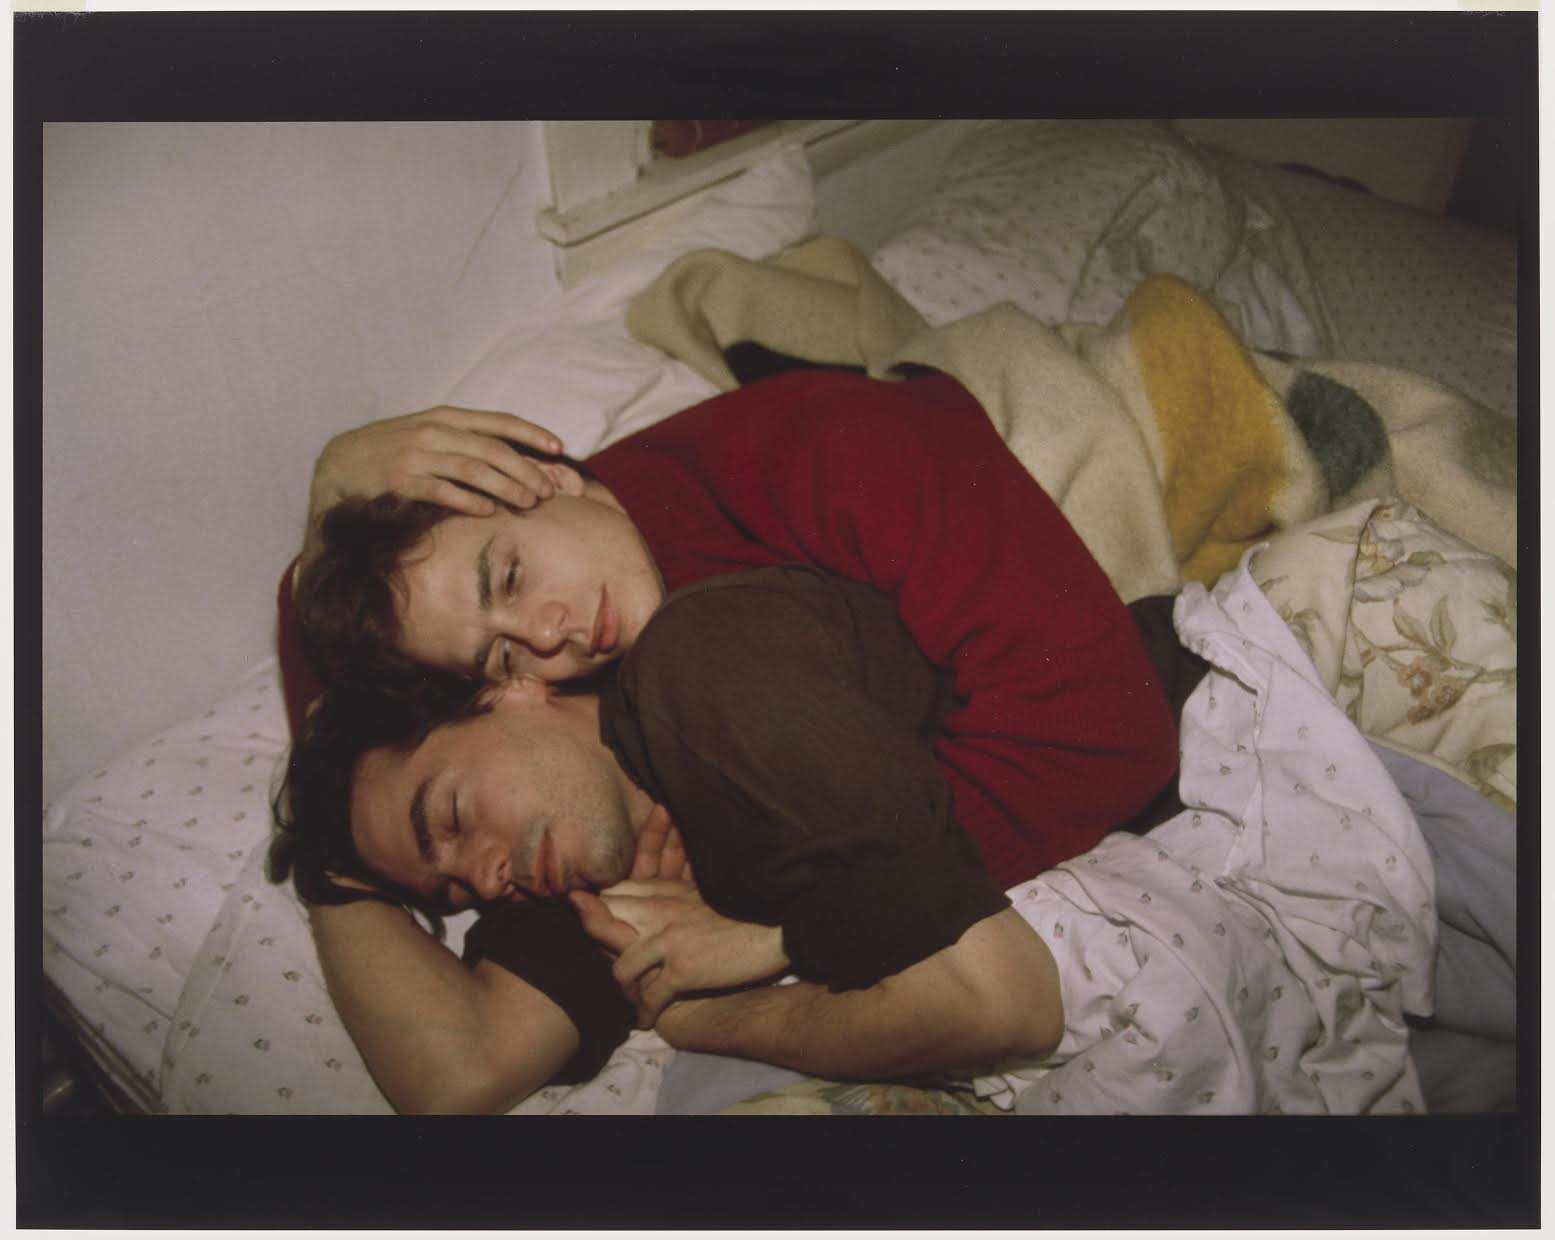 """Lewis and Matt on the Bed, Cambridge, MA"". Nan Goldin (American, born in 1953). 1988. Photograph, silver-dye bleach print. * Gift of Rudy Kikel and Sterling Giles. * Photograph © Museum of Fine Arts, Boston."